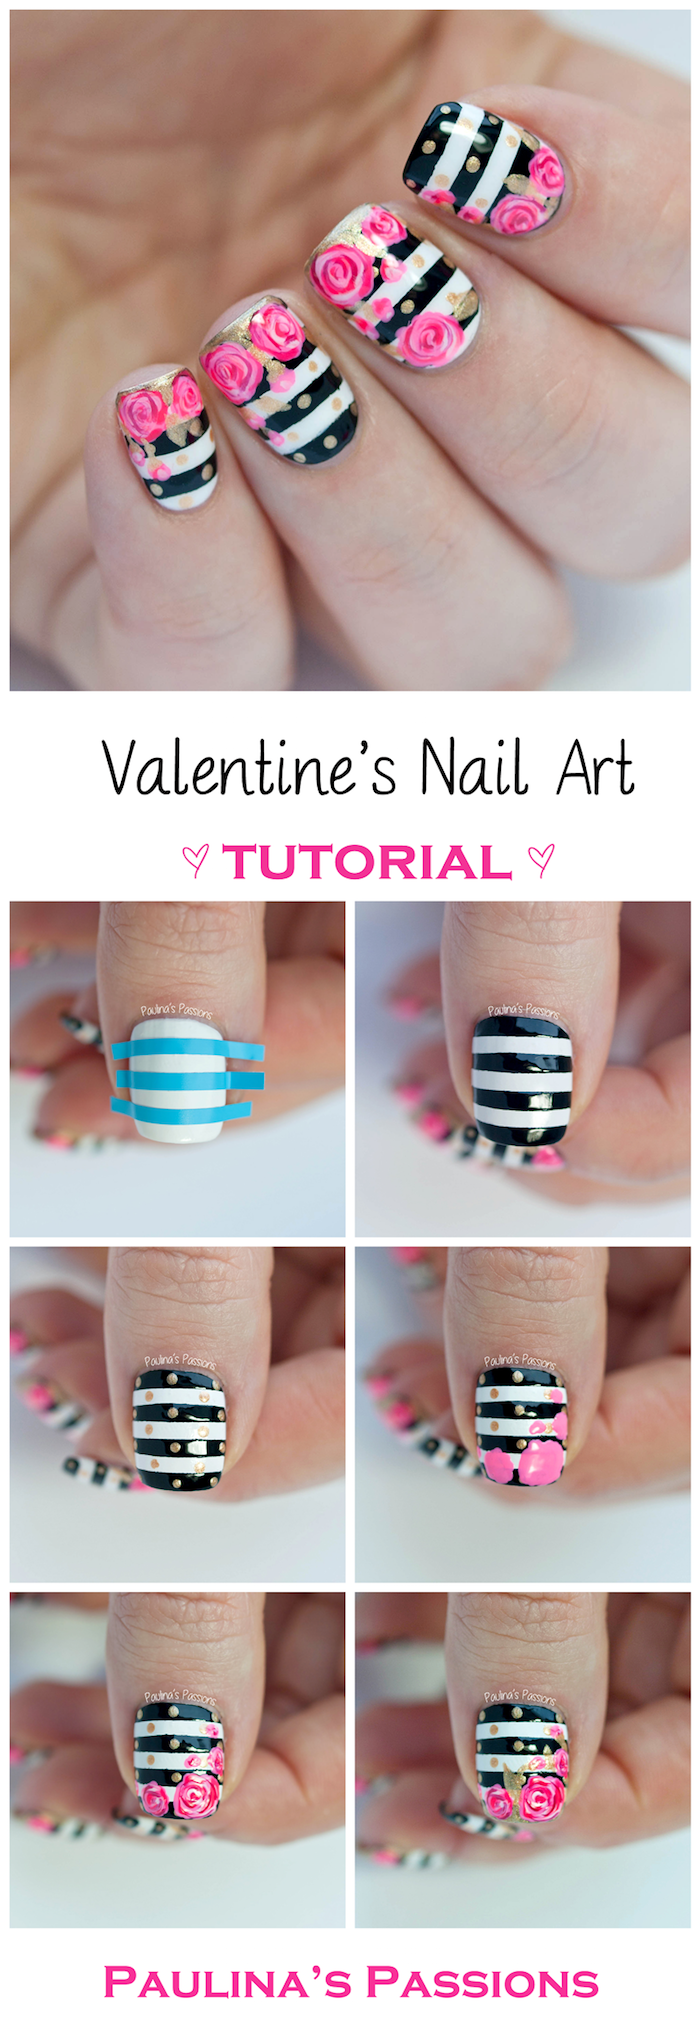 black and white striped nail polish valentines day nails coffin shape pink roses decorations step by step diy tutorial